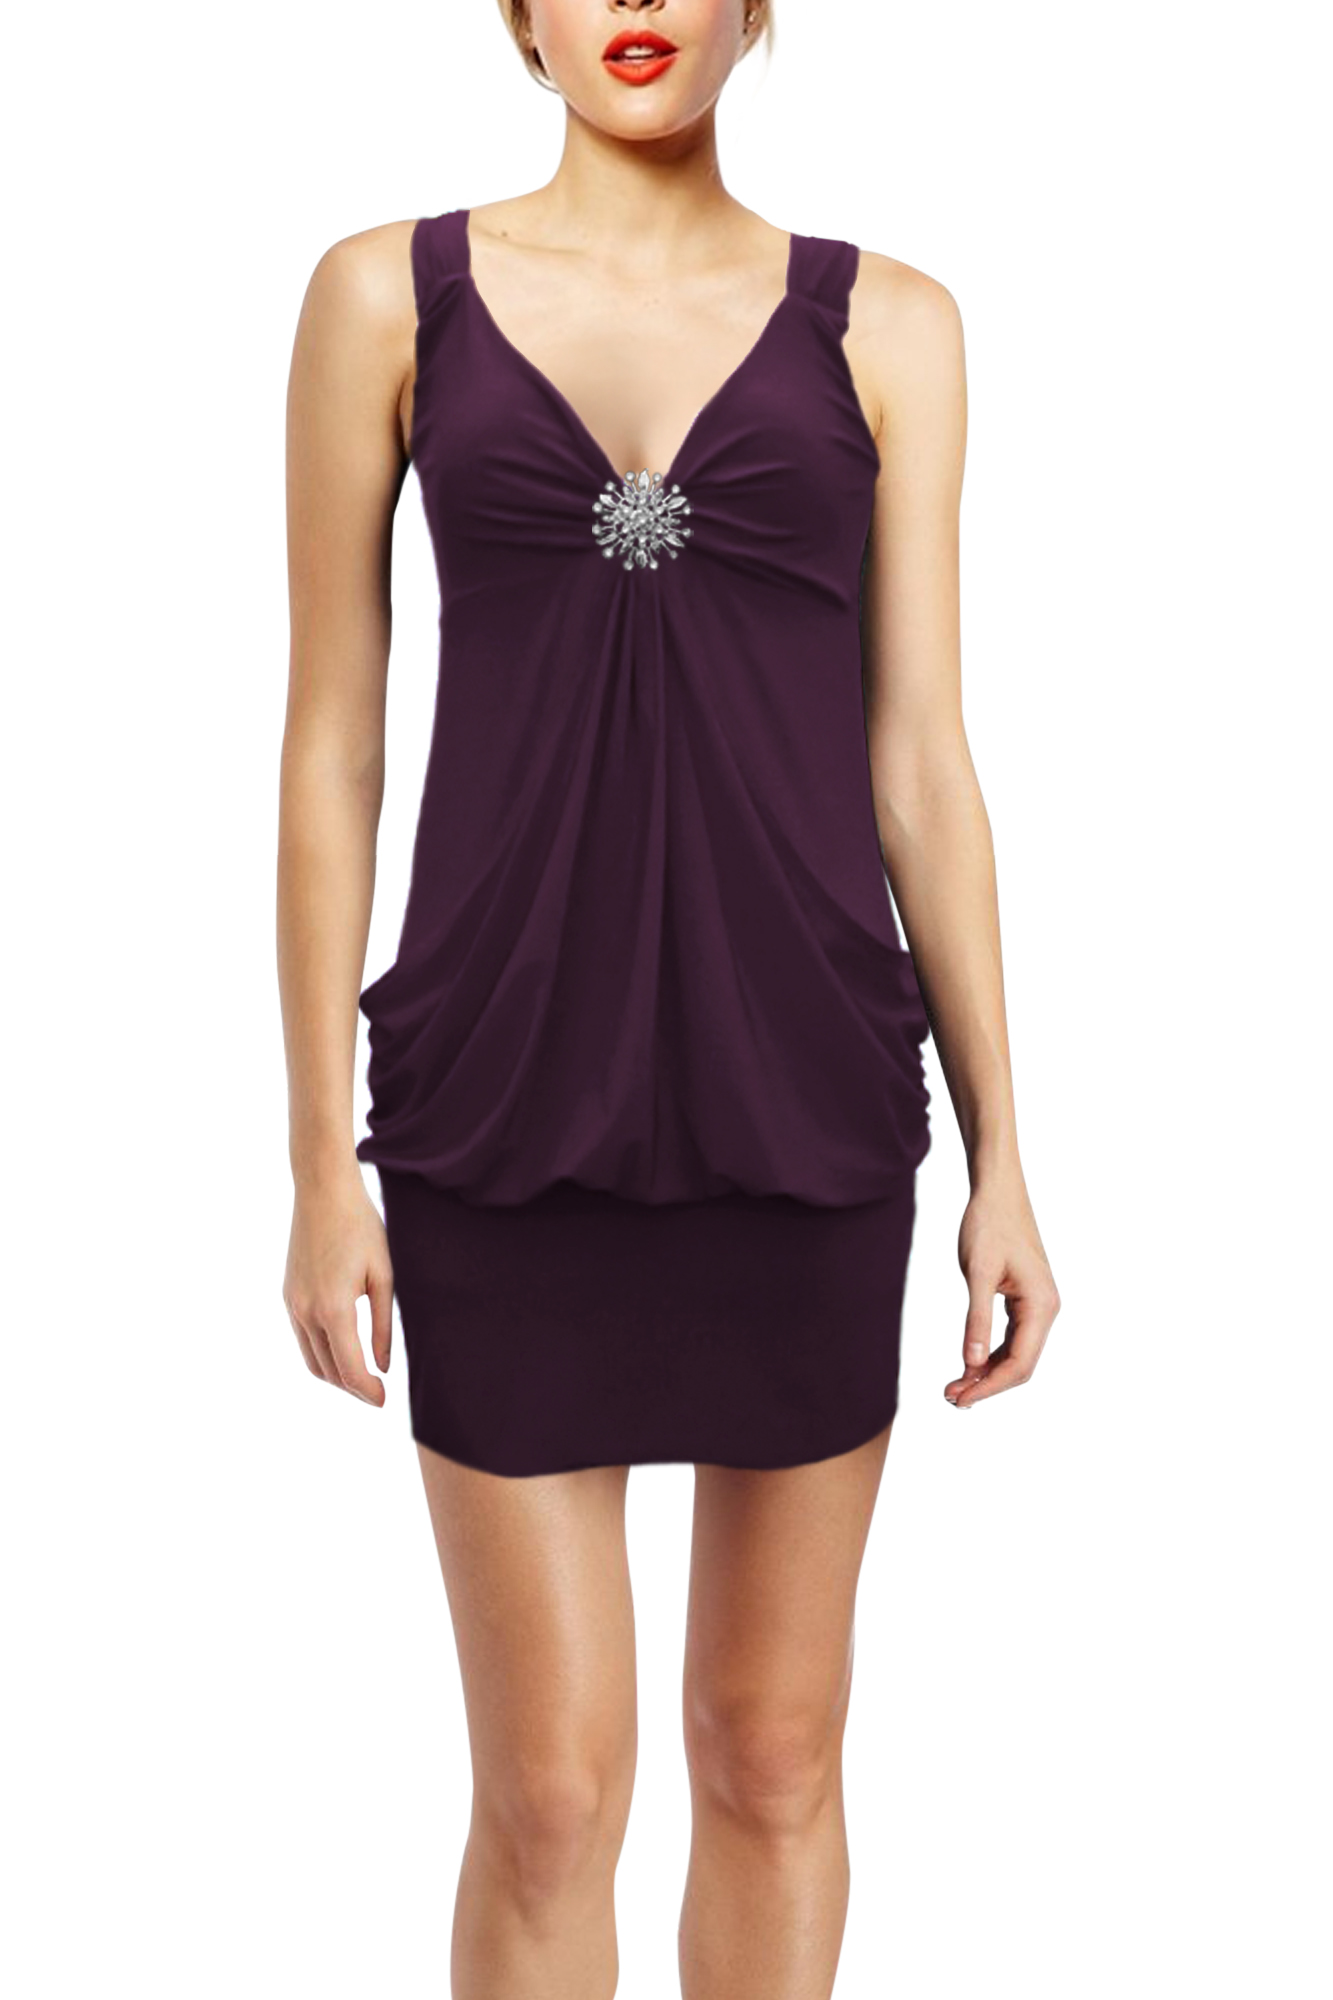 New Stunning Cocktail Party Clubwear Evening Dress Baggy Broach Top Size 12 - 24 | EBay